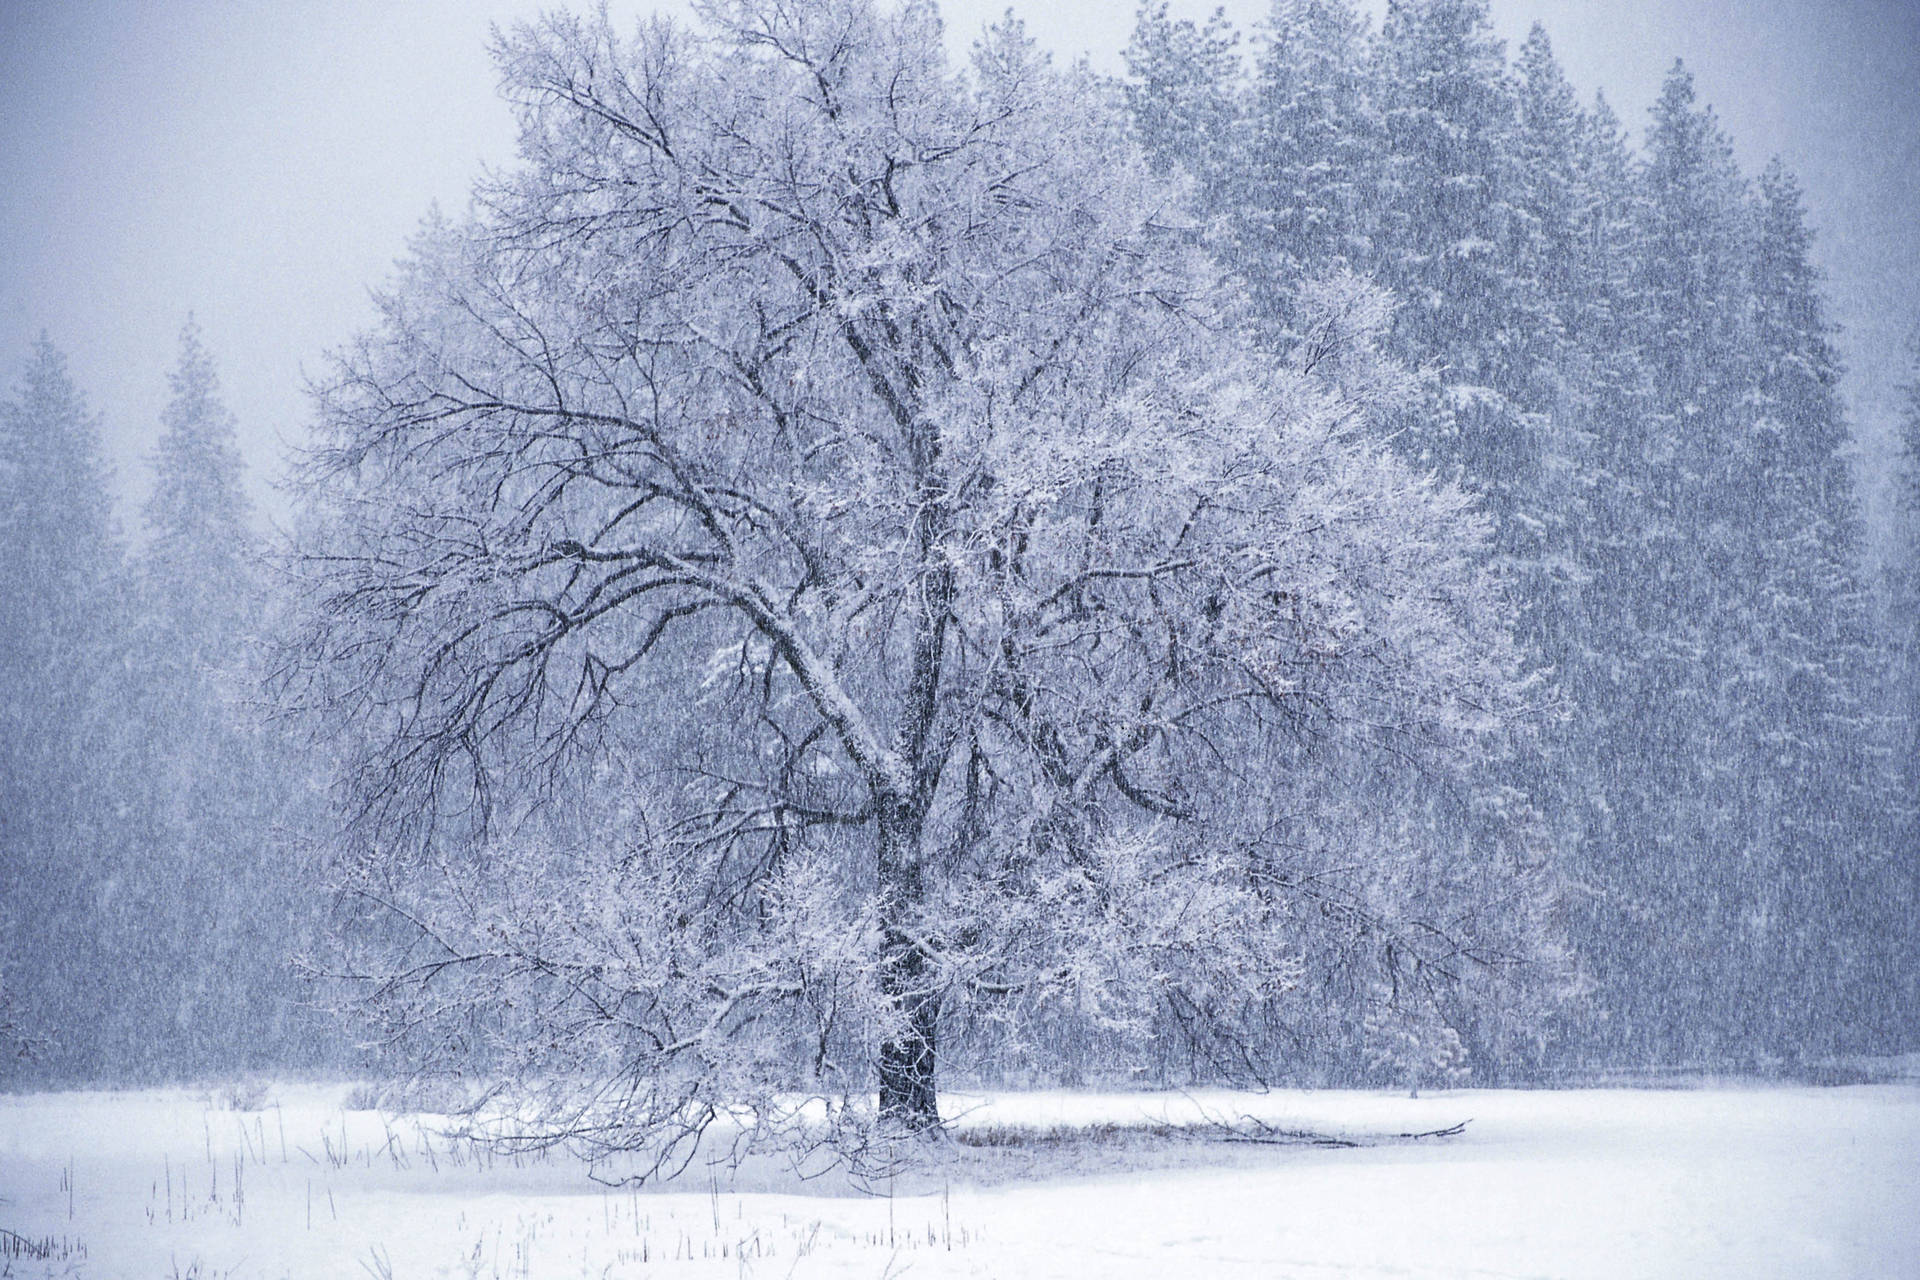 Winter tree snow storm Wallpaper 1444369814 1920x1280